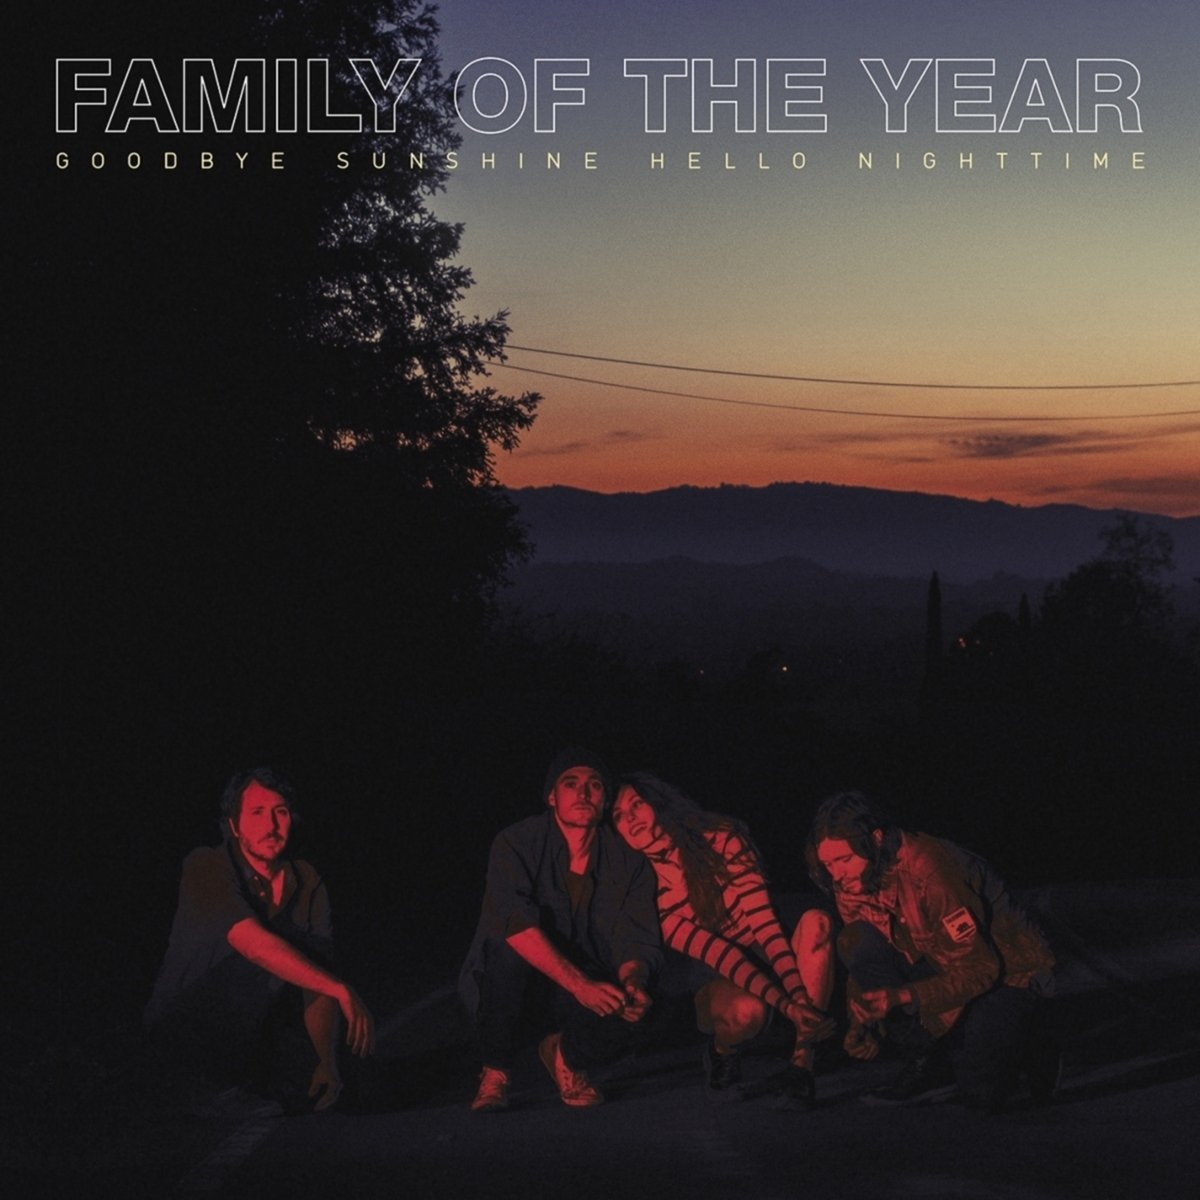 Family of the Year - Goodbye Sunshine, Hello Nighttime [LP]